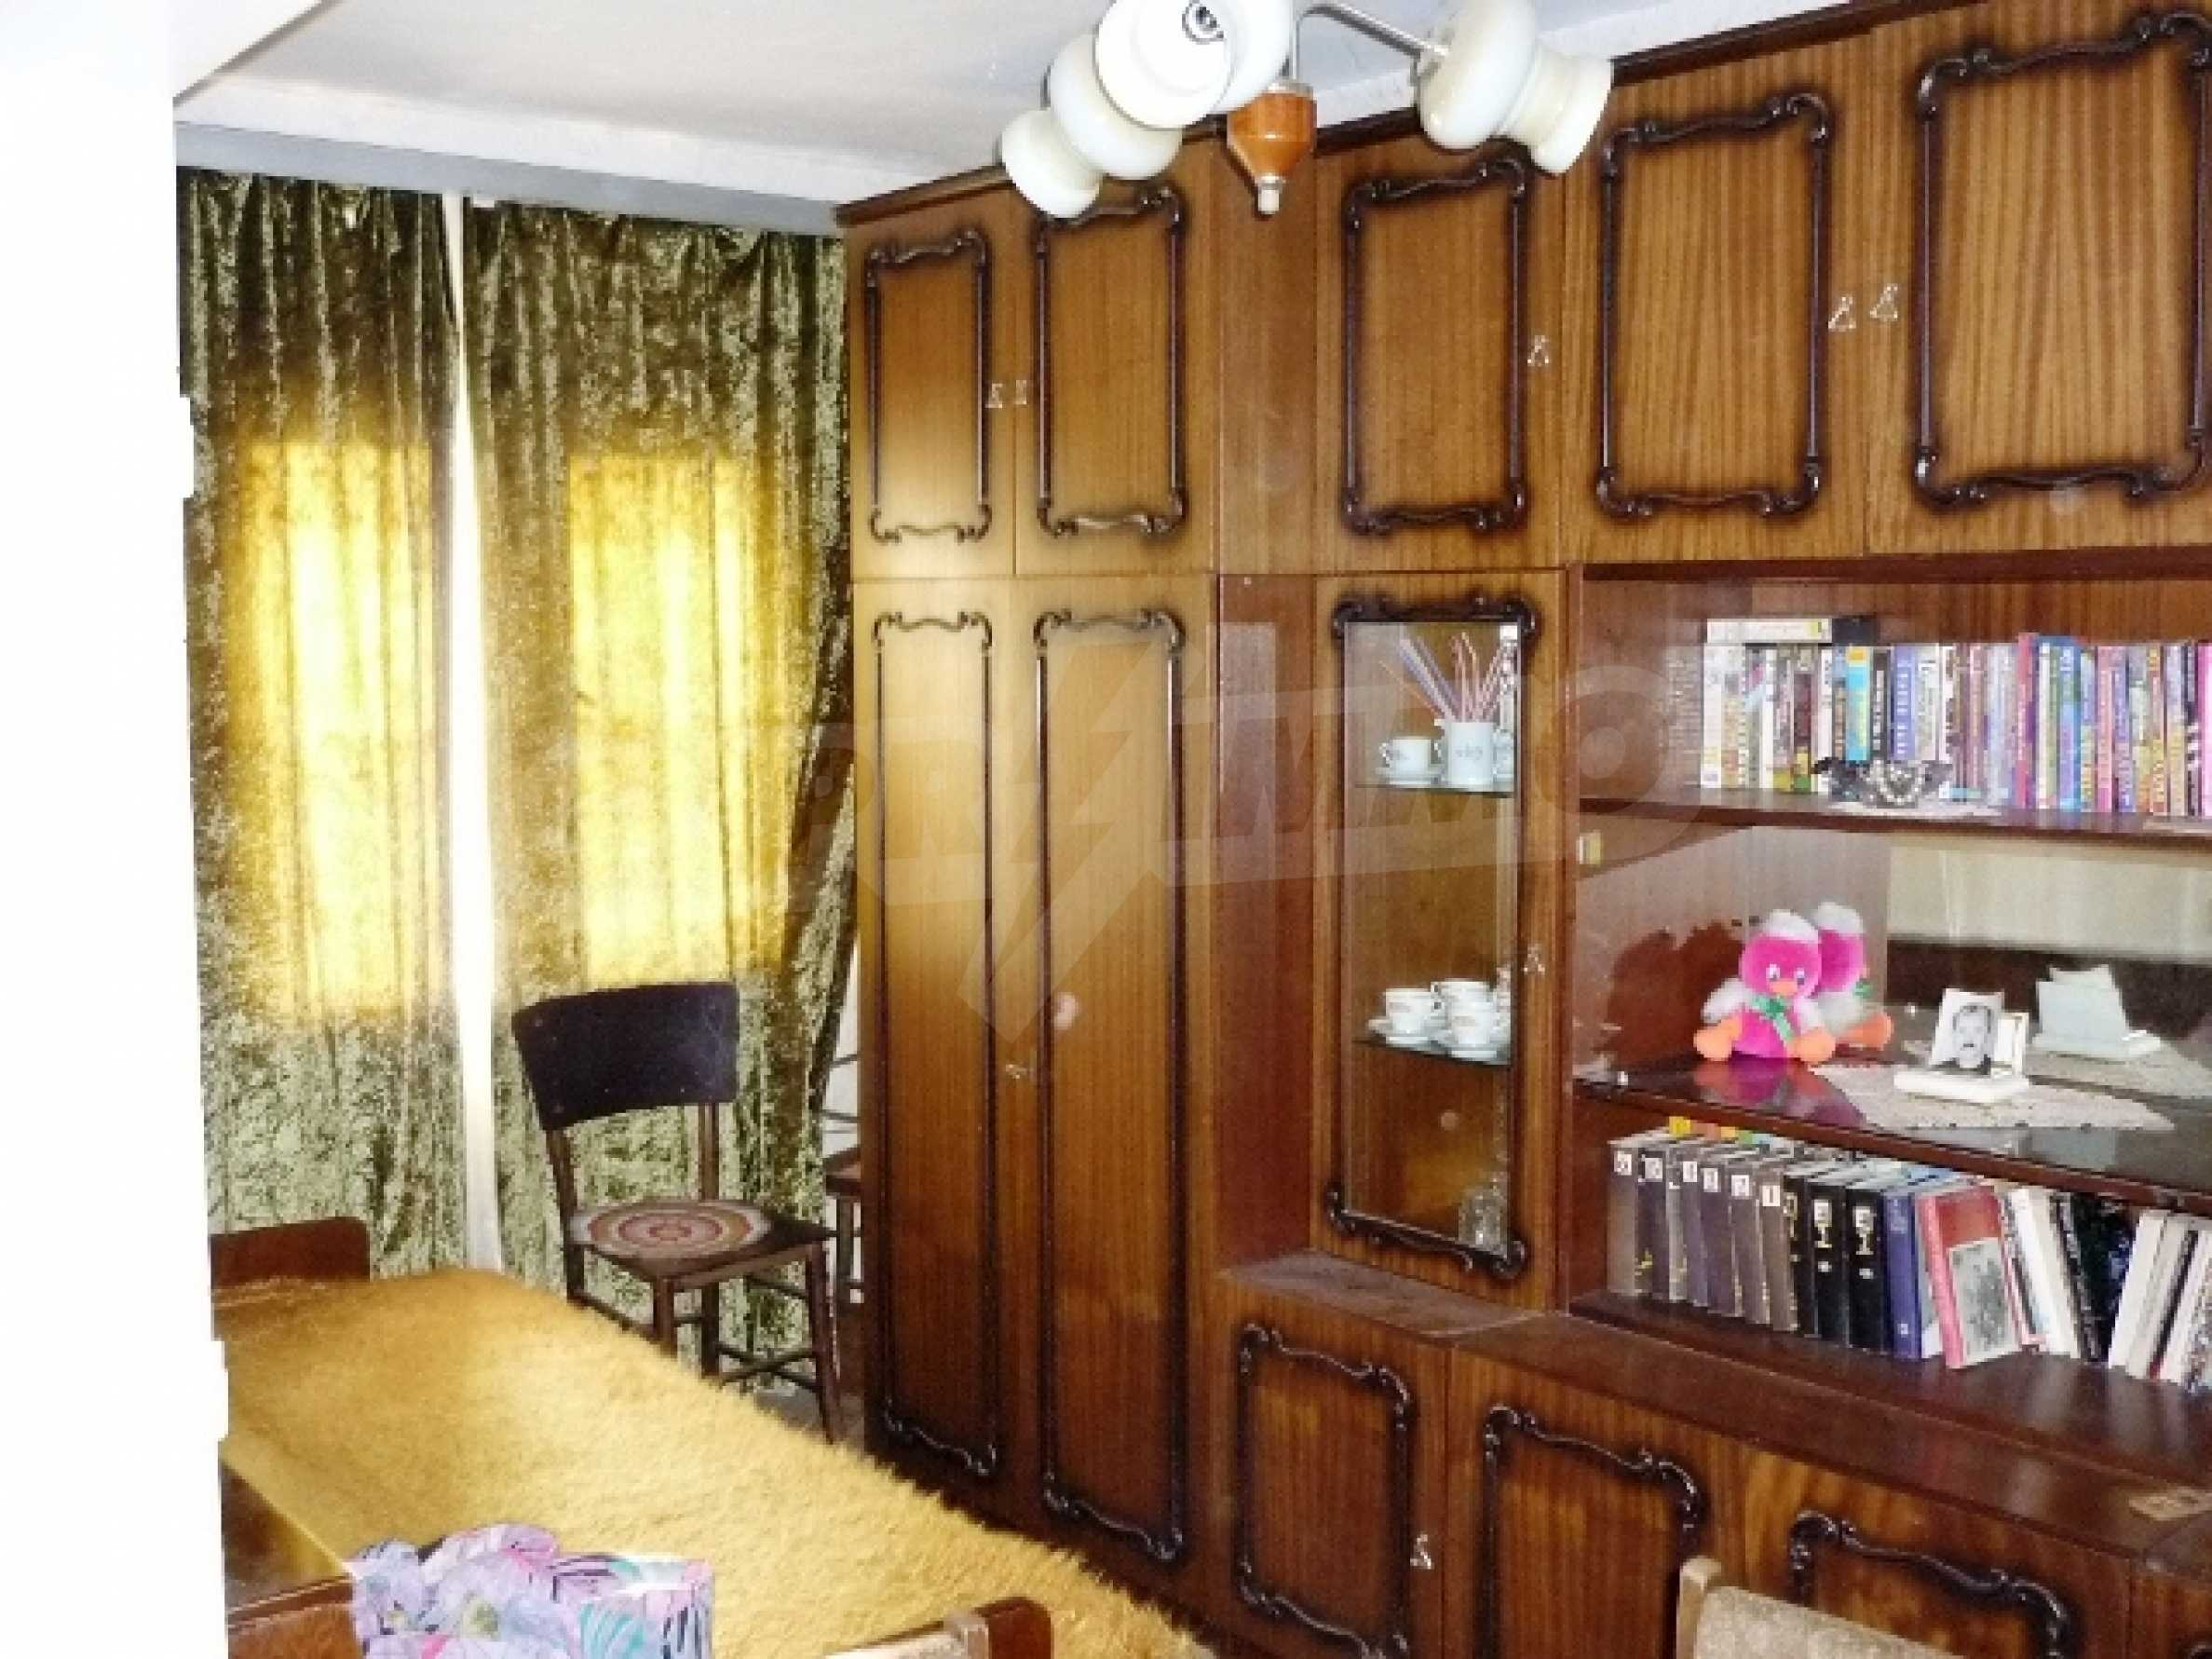 One-storey 5-bedroom house in Ostritsa village, Ruse district 15